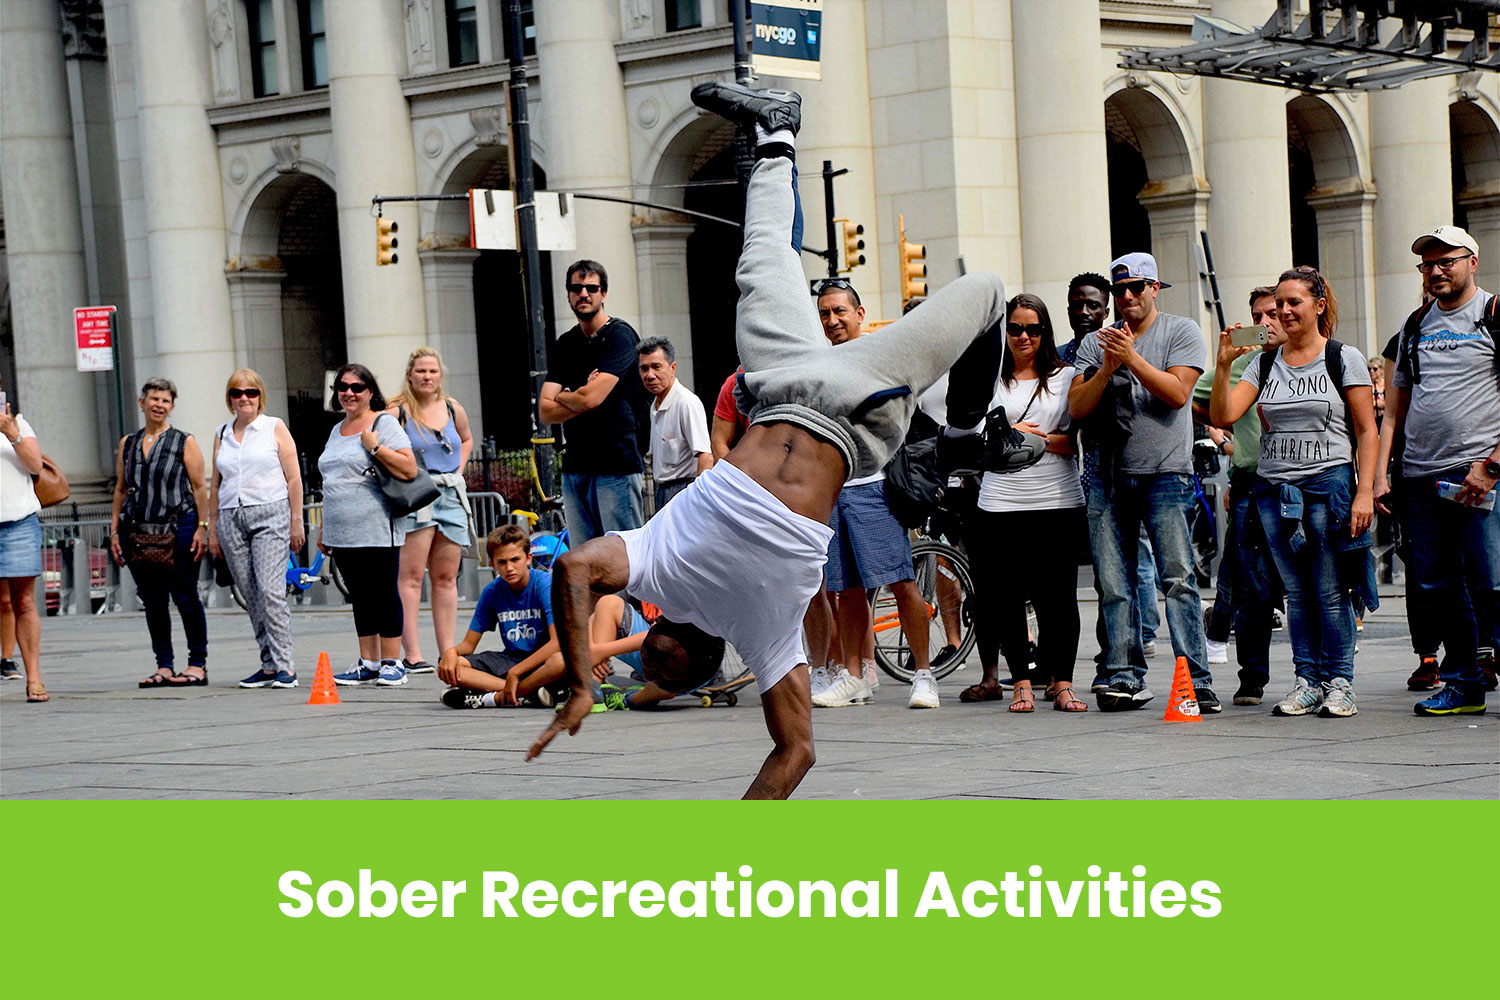 Sober Recreational Activities